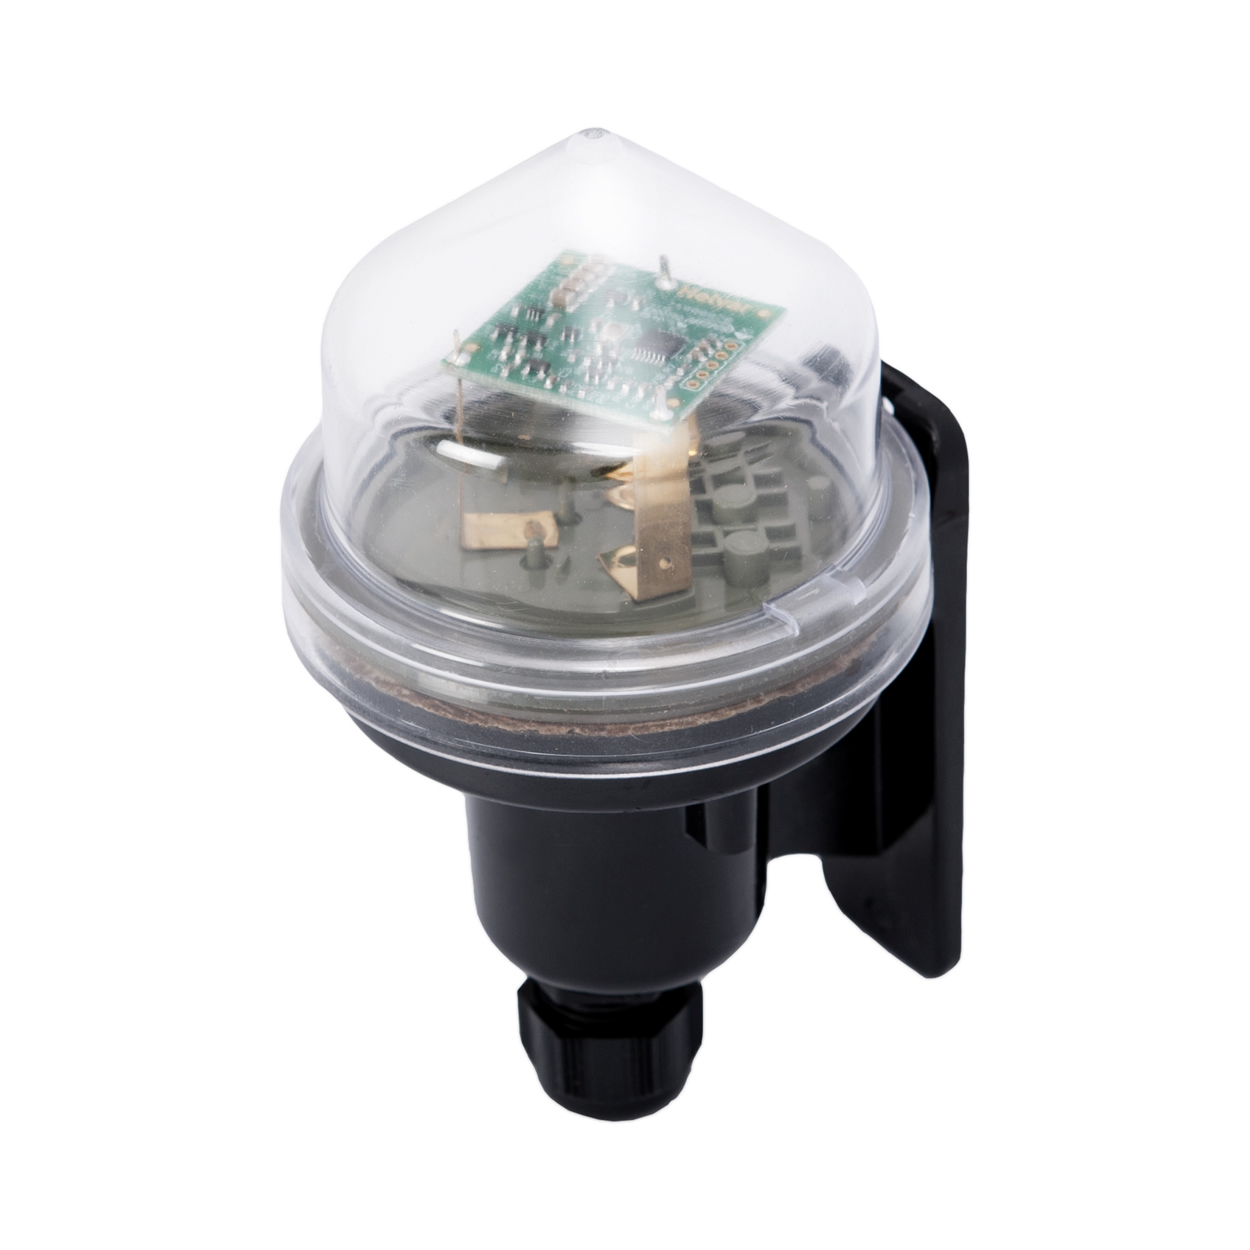 Helvar DALI External Light Sensor (329)